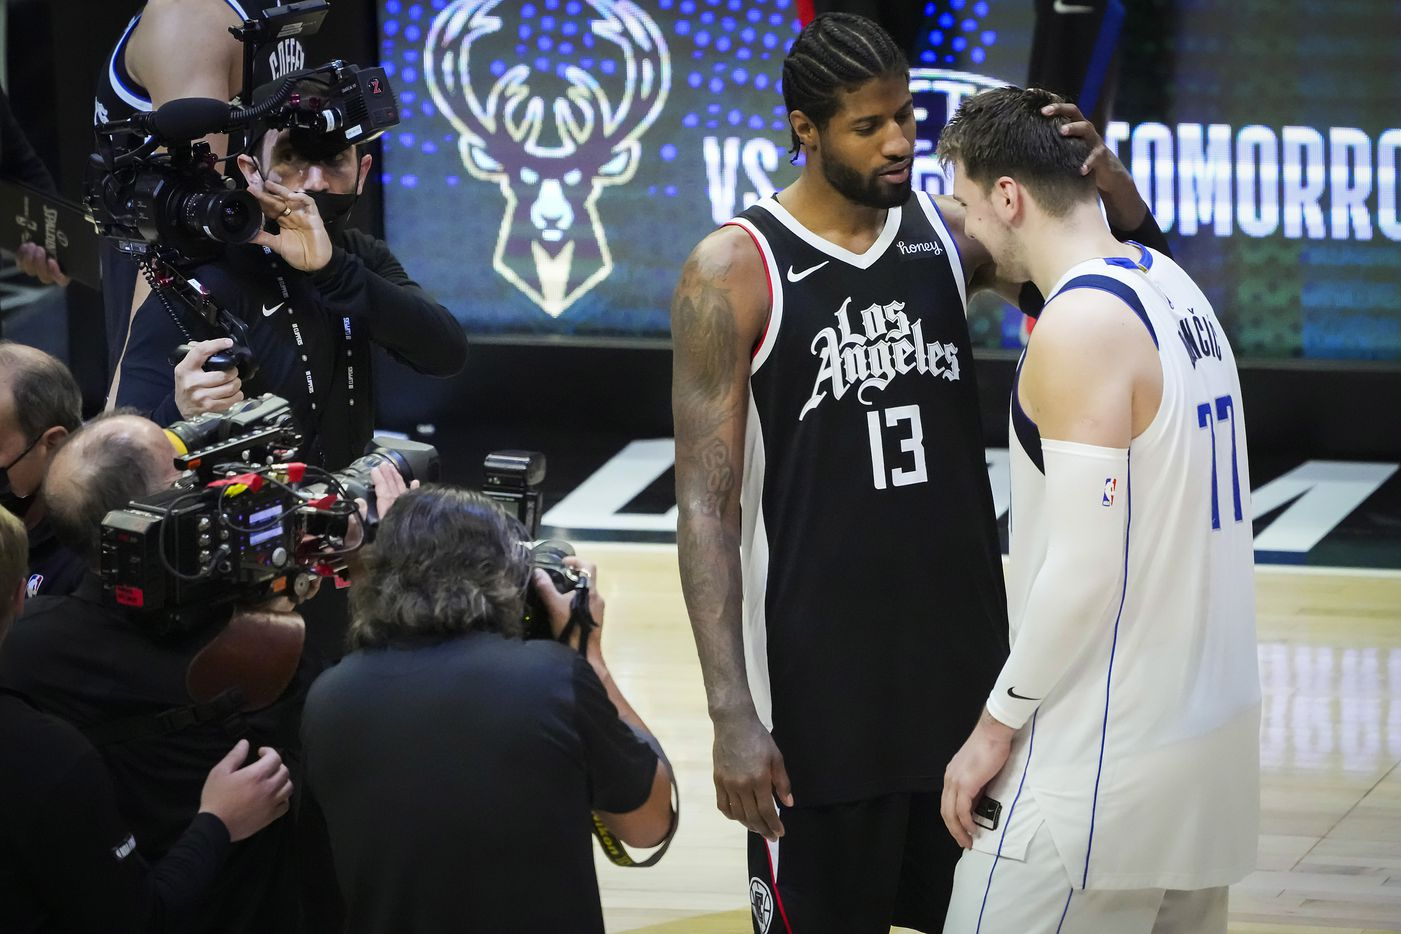 Dallas Mavericks guard Luka Doncic (77) ins consoled by LA Clippers guard Paul George (13) after the Clippers victory in Game 7 of an NBA playoff series at the Staples Center on Sunday, June 6, 2021, in Los Angeles.